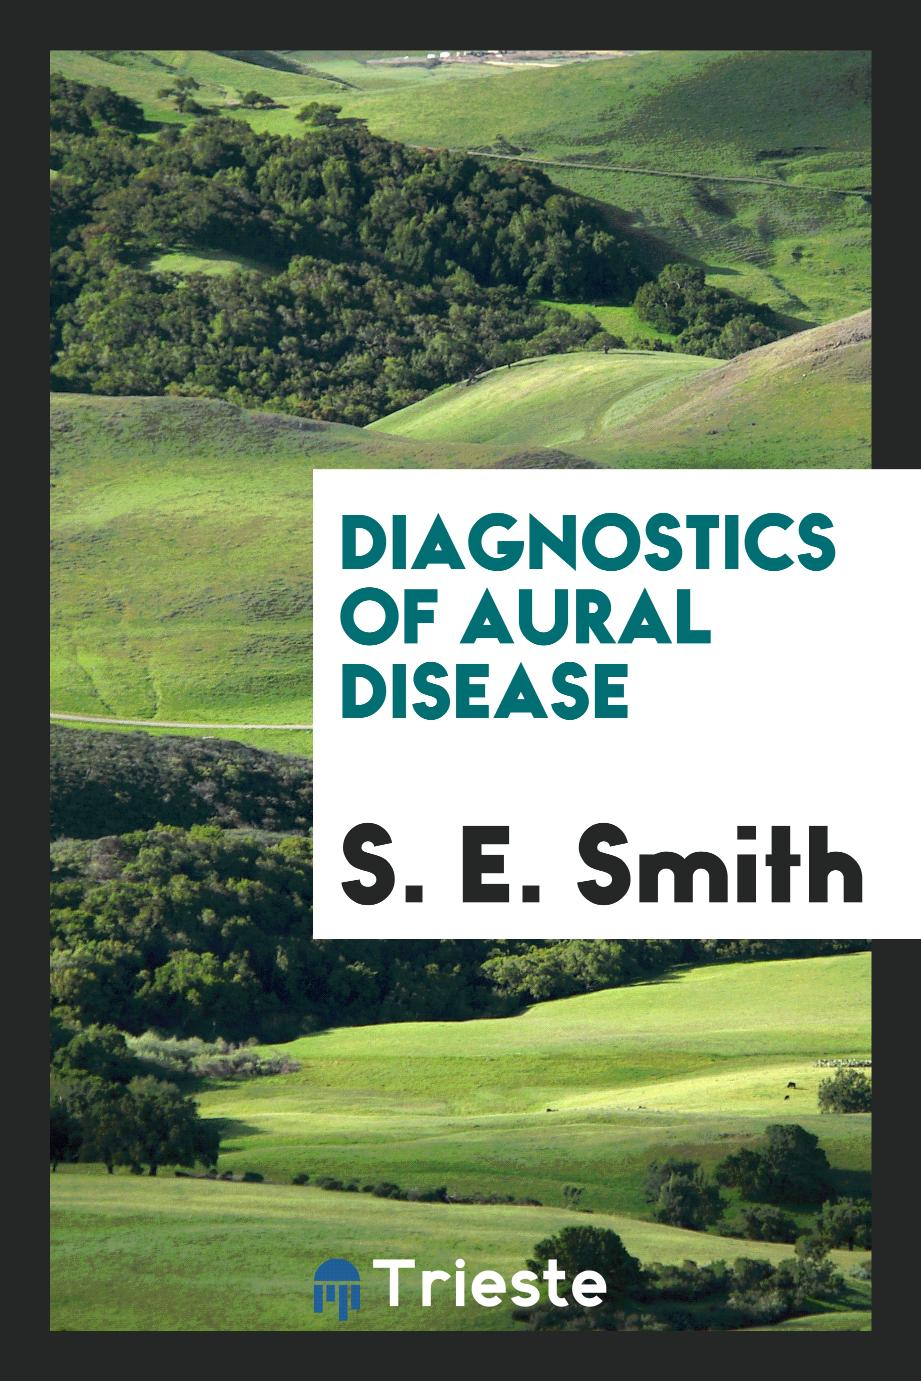 Diagnostics of Aural Disease